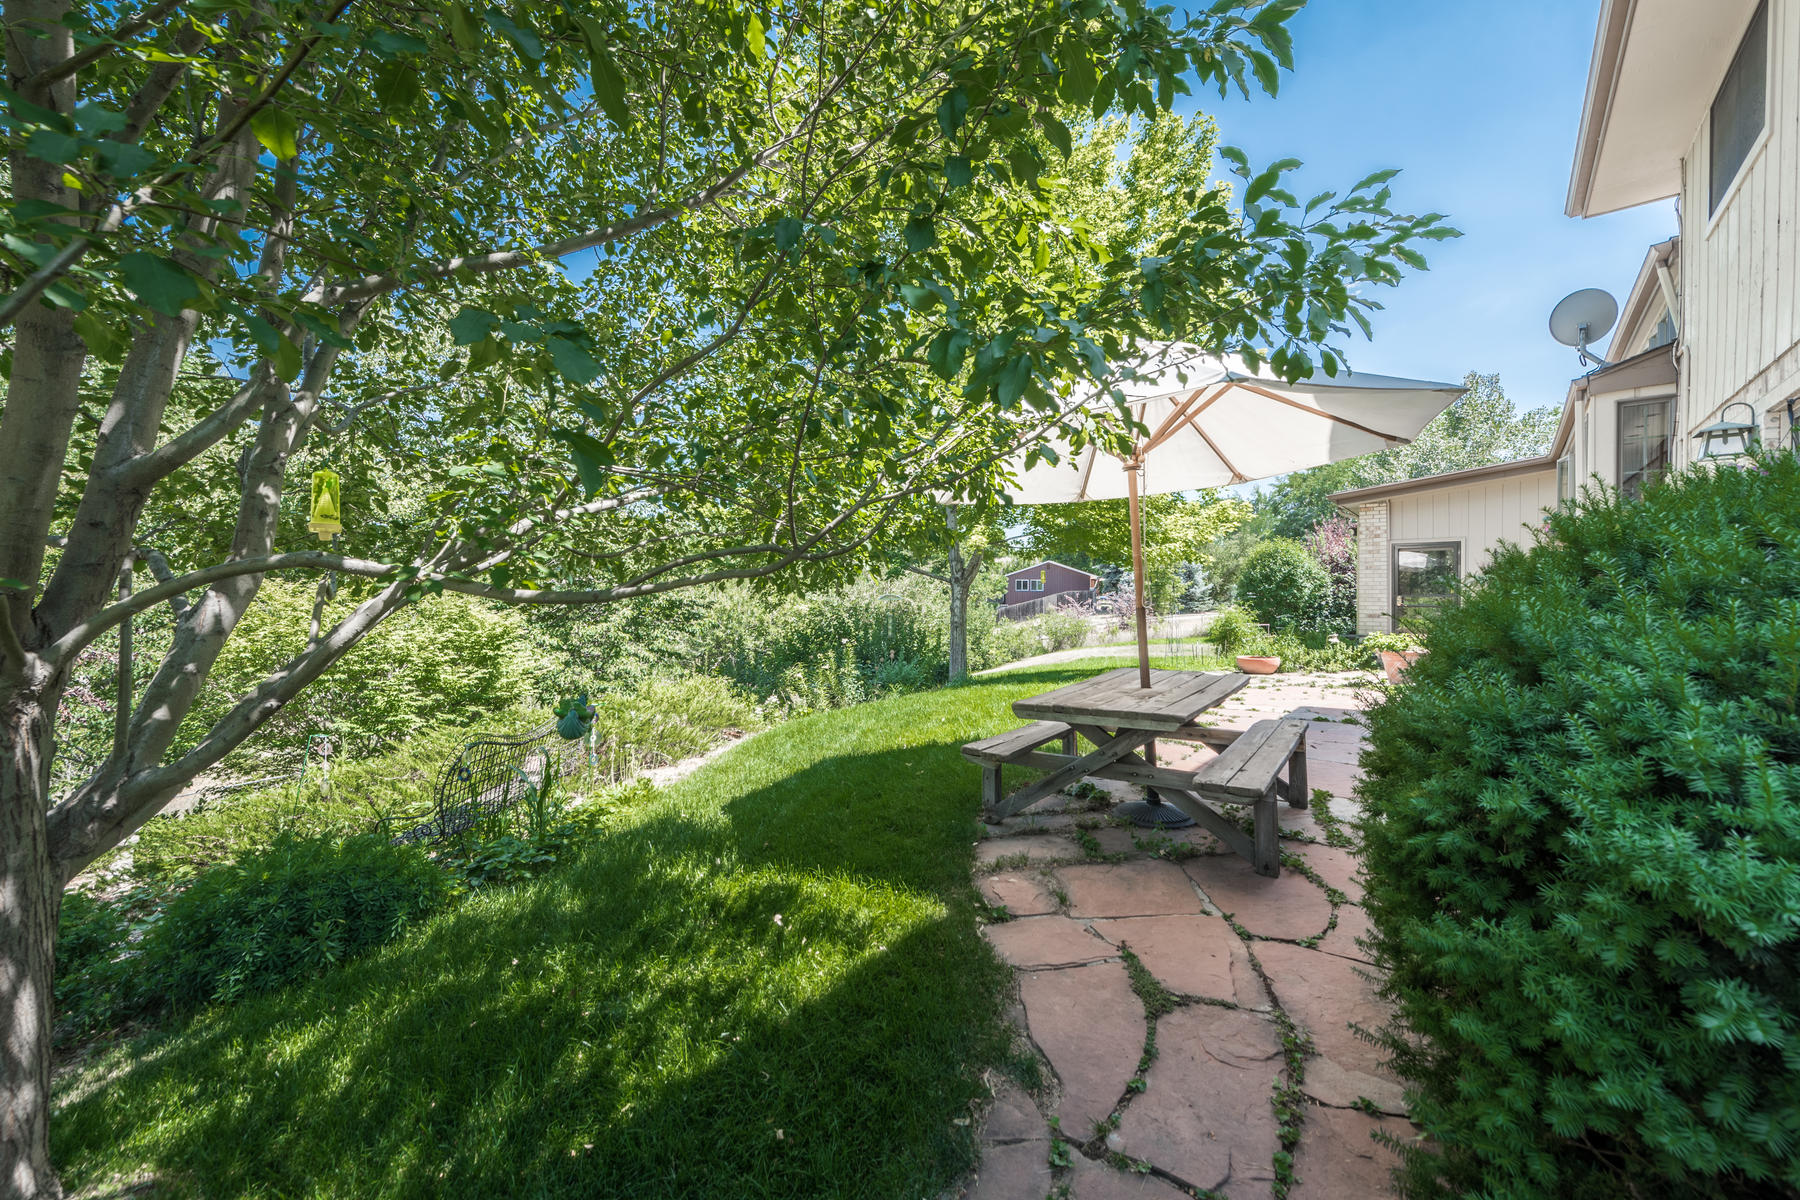 Additional photo for property listing at Fabulous Half Acre Home Overlooking Carbone Park And Lee Gulch 7490 South Gallup Street Littleton, Colorado 80120 United States